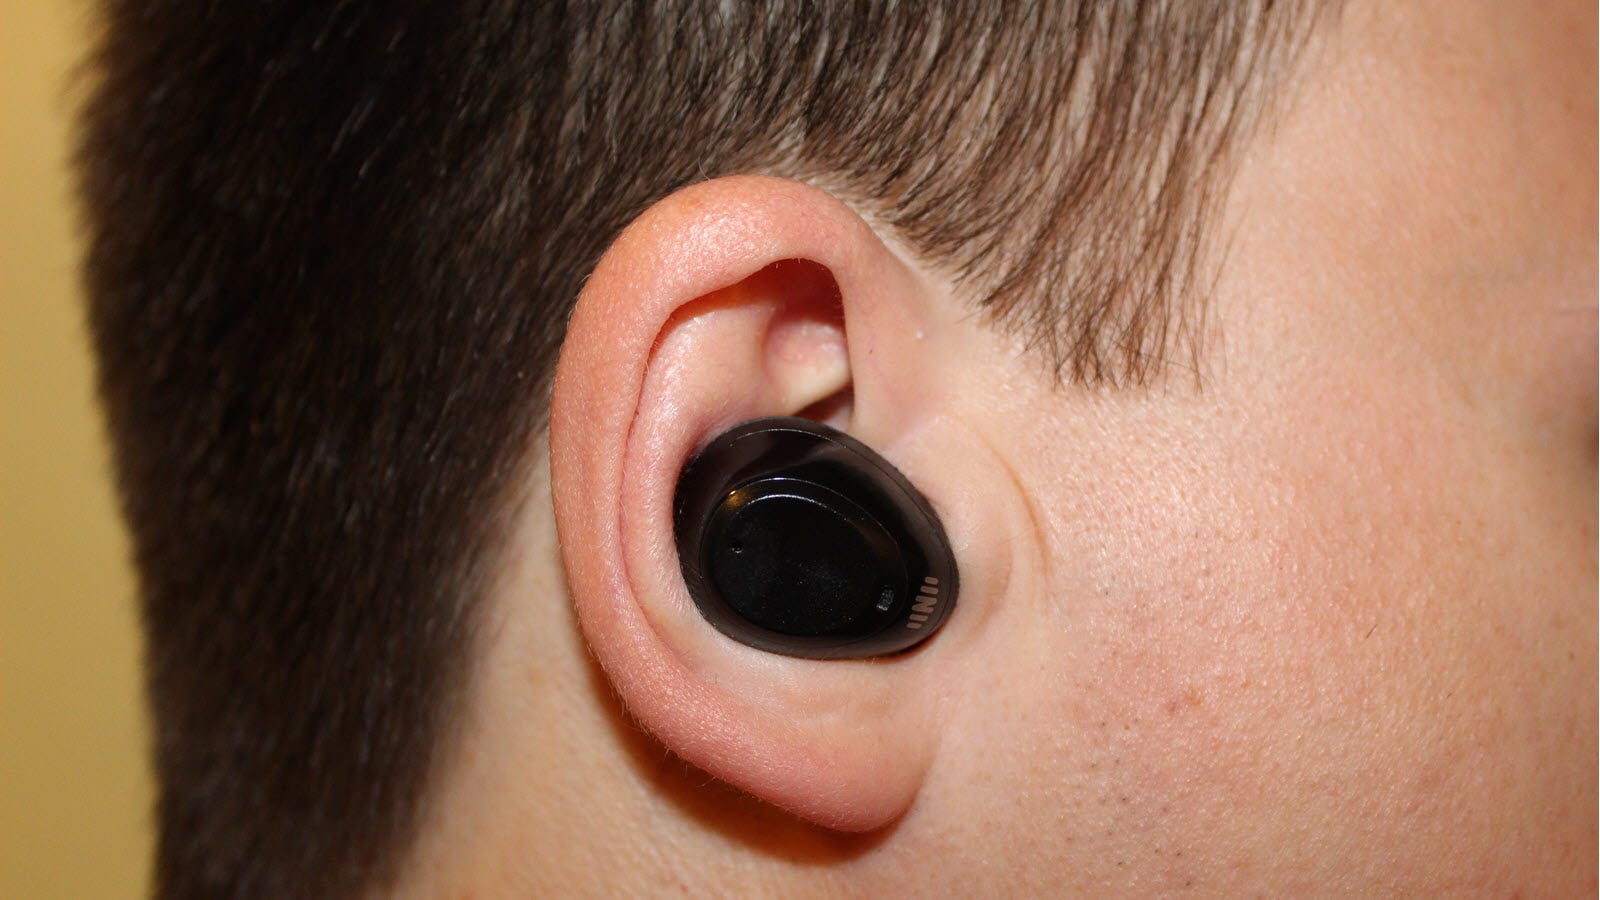 Nuheara IQBuds Boost in an ear, showing relative size.